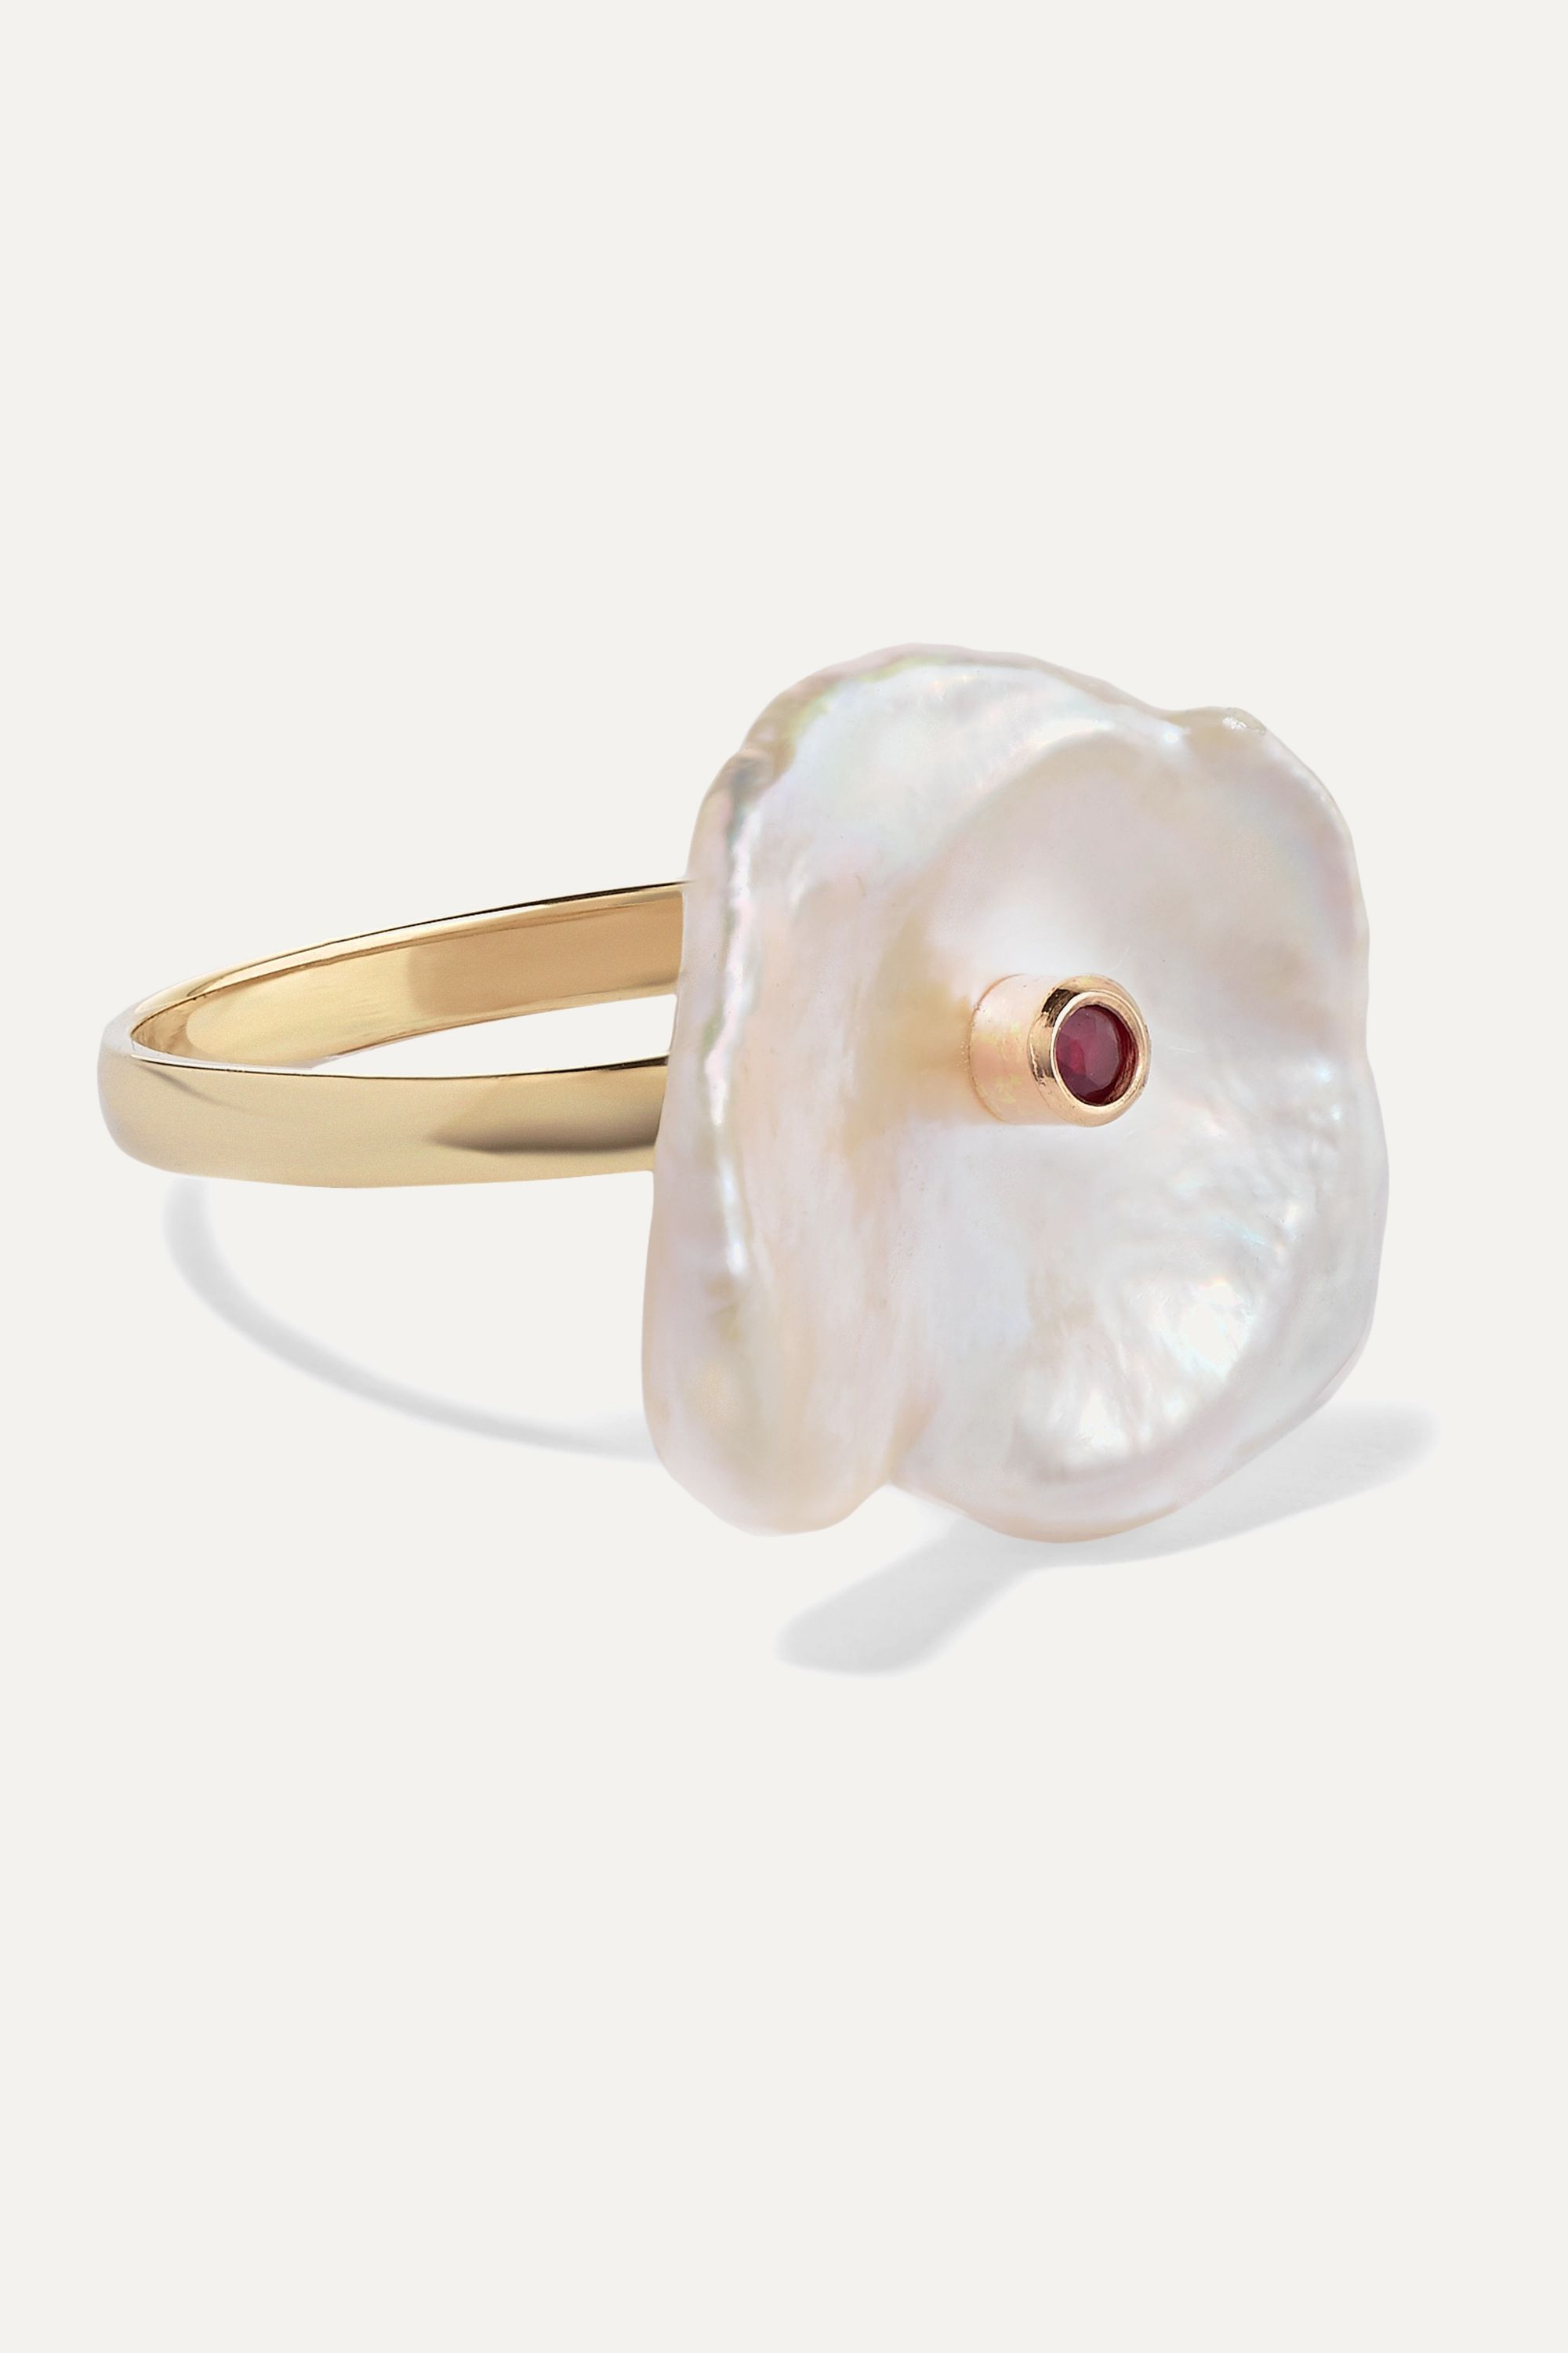 Poppy Finch Gold, pearl and ruby ring